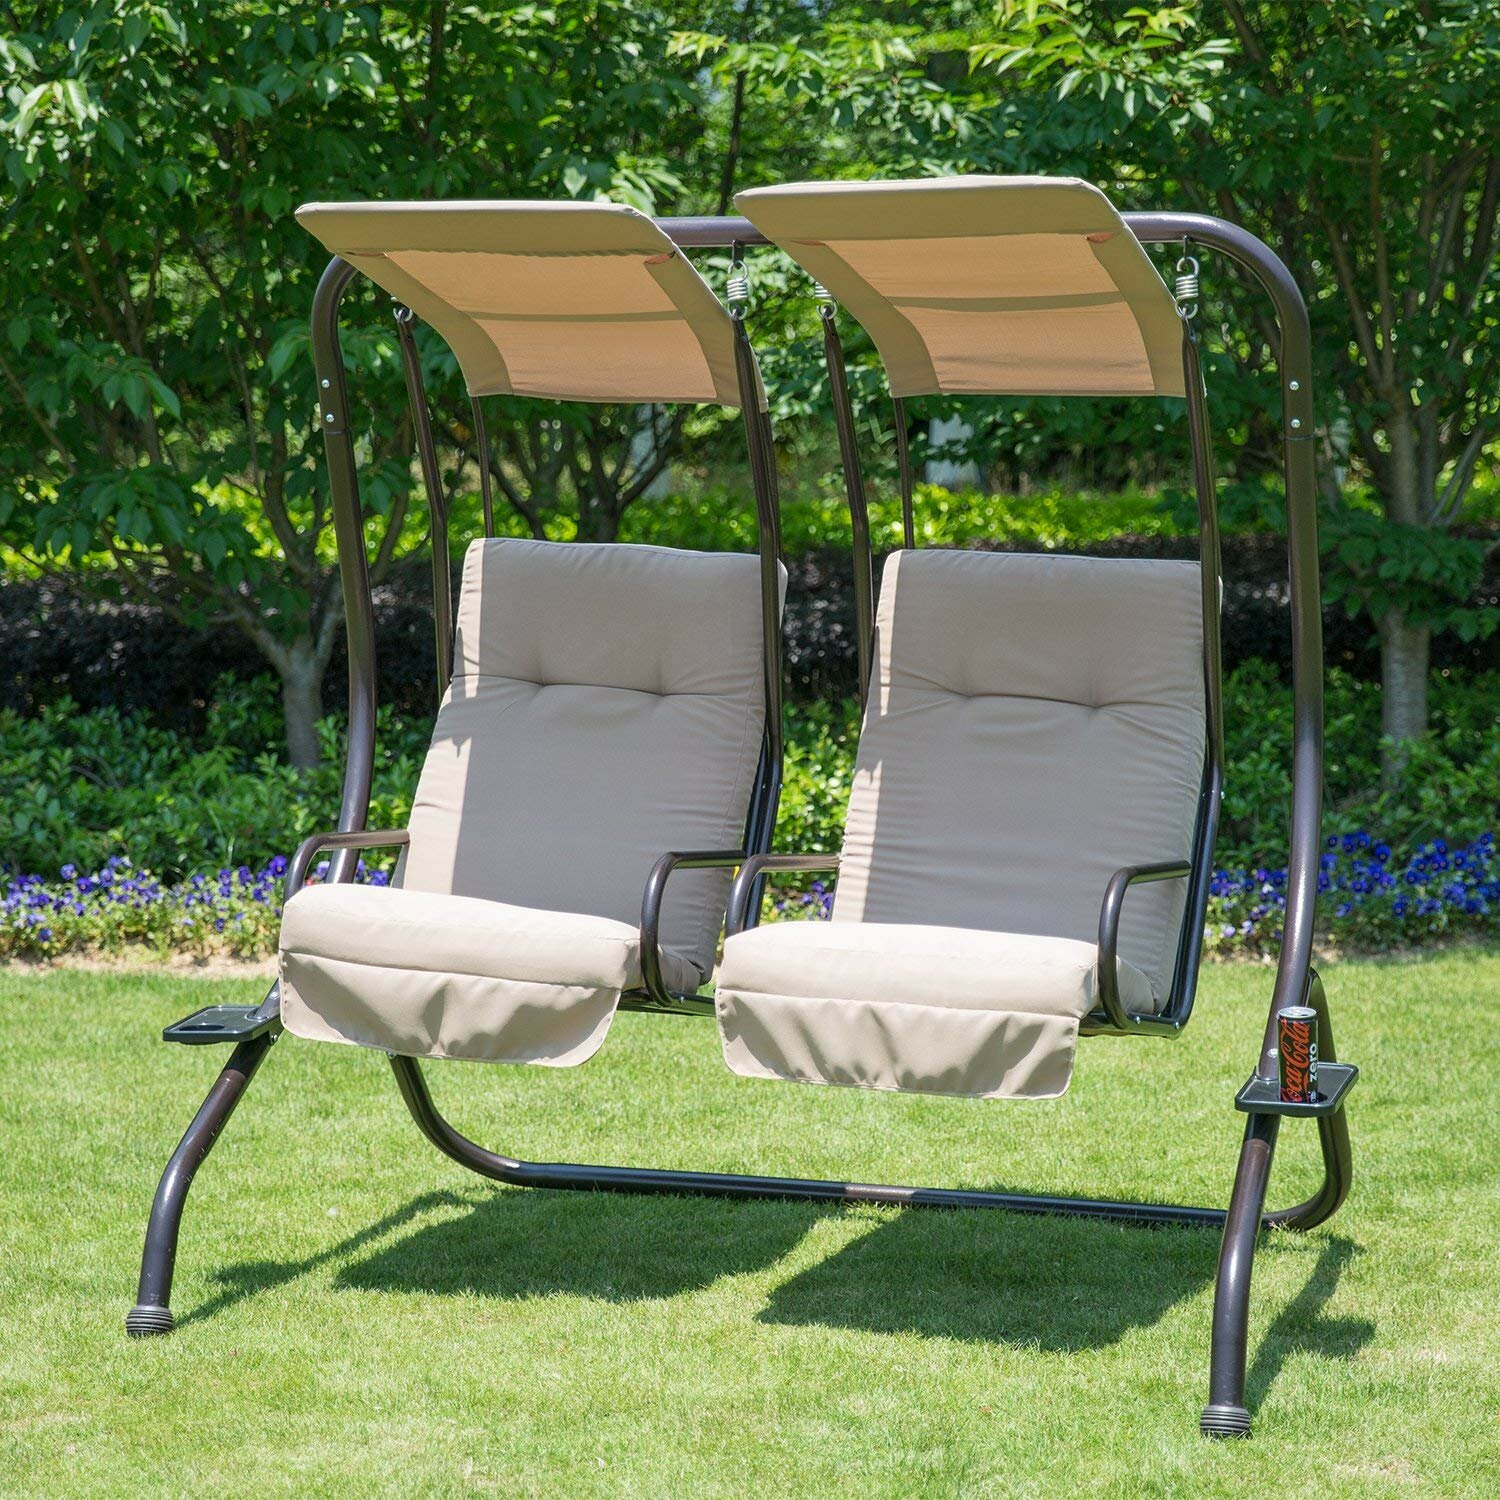 Freeport Park Morrilton Porch Swing With Stand & Reviews In 2 Person Adjustable Tilt Canopy Patio Loveseat Porch Swings (View 13 of 25)